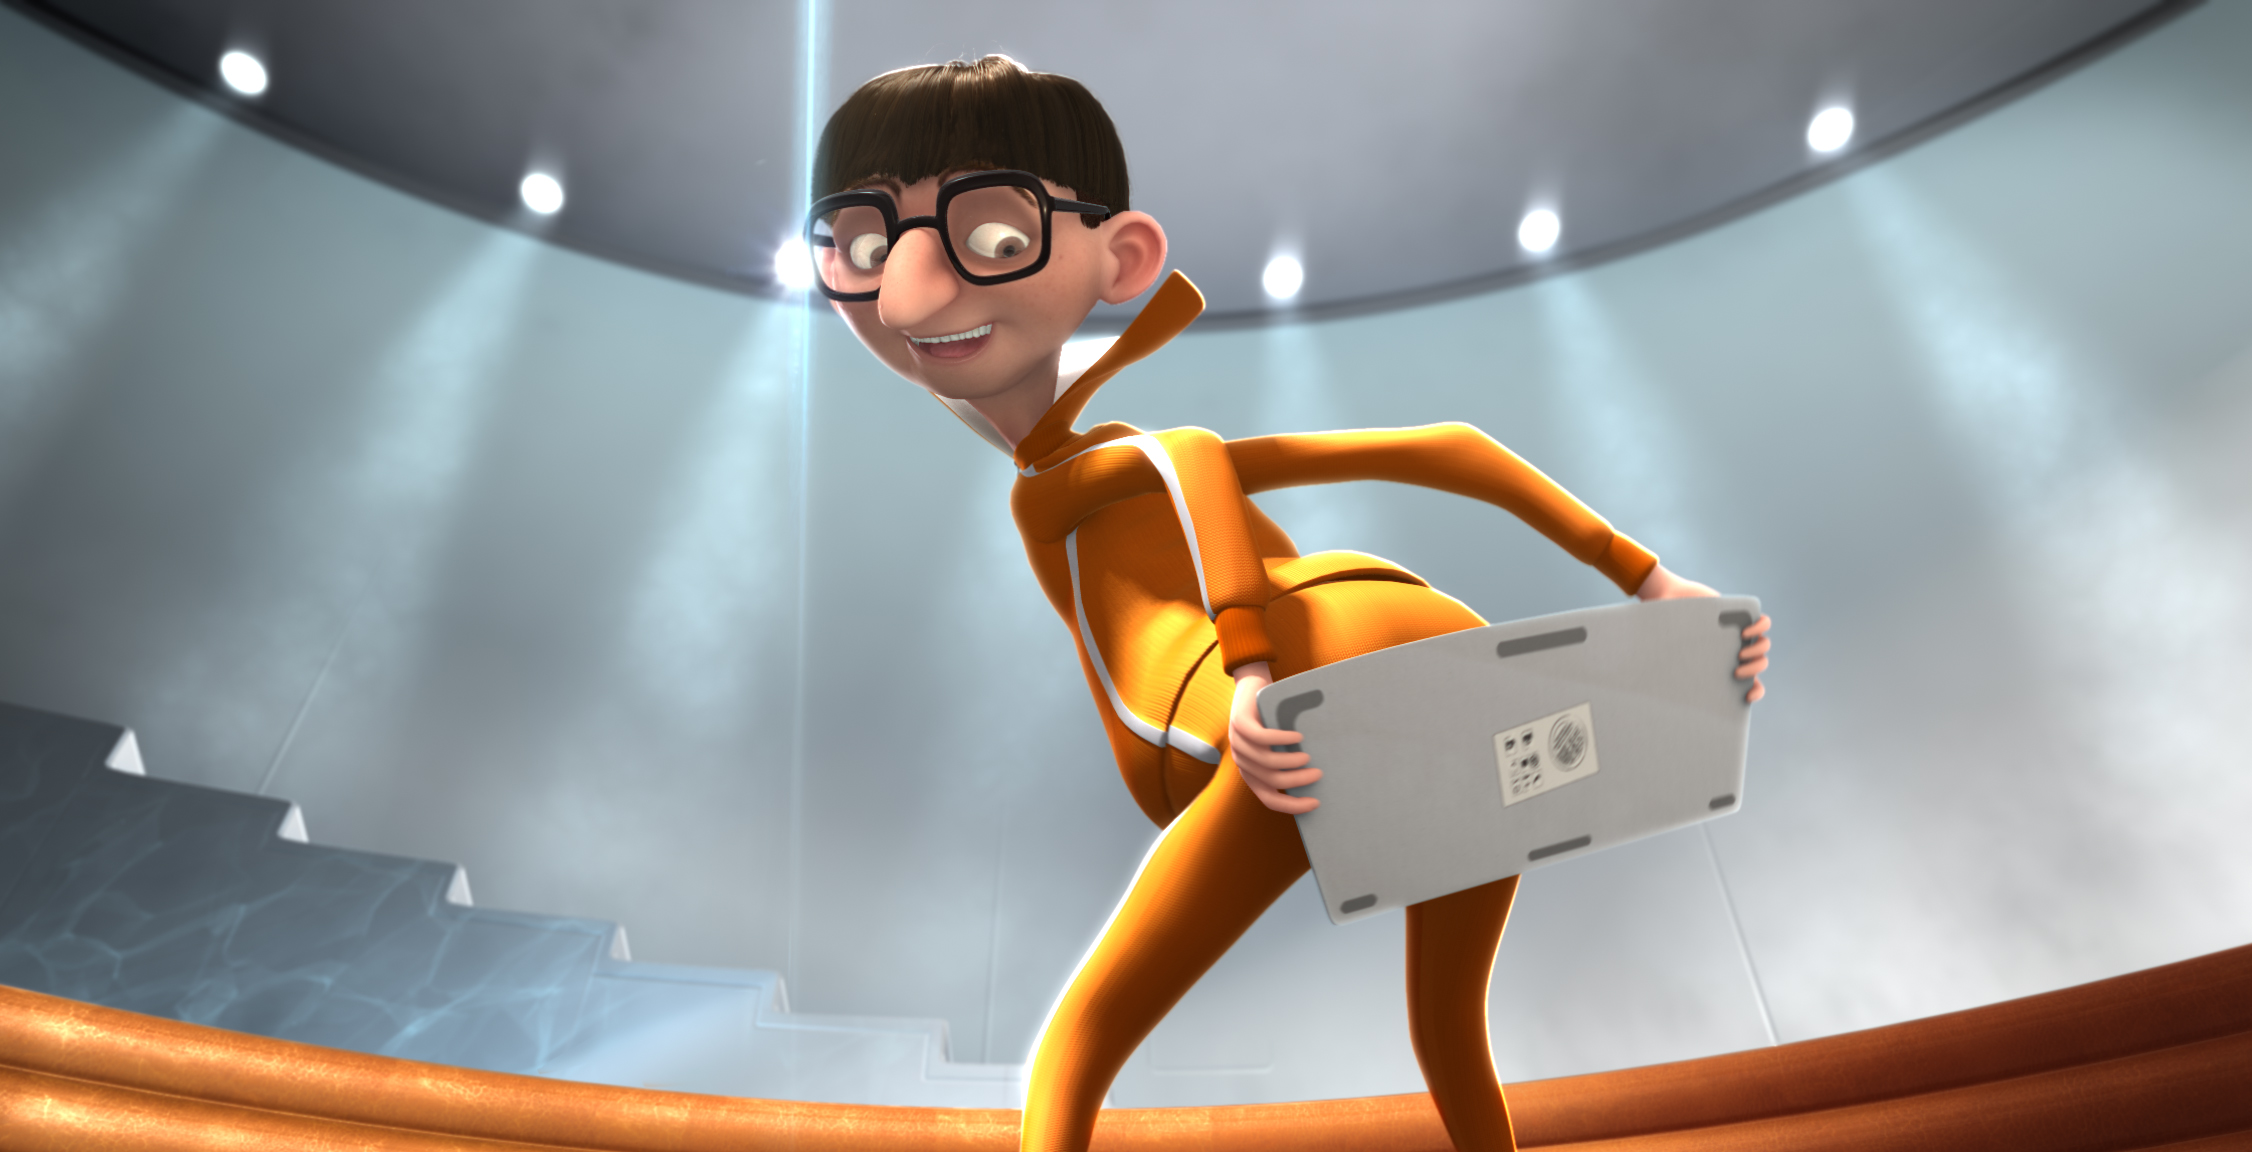 Despicable me hd wallpaper background image 2252x1152 id 473784 wallpaper abyss - Despicable me hd images ...